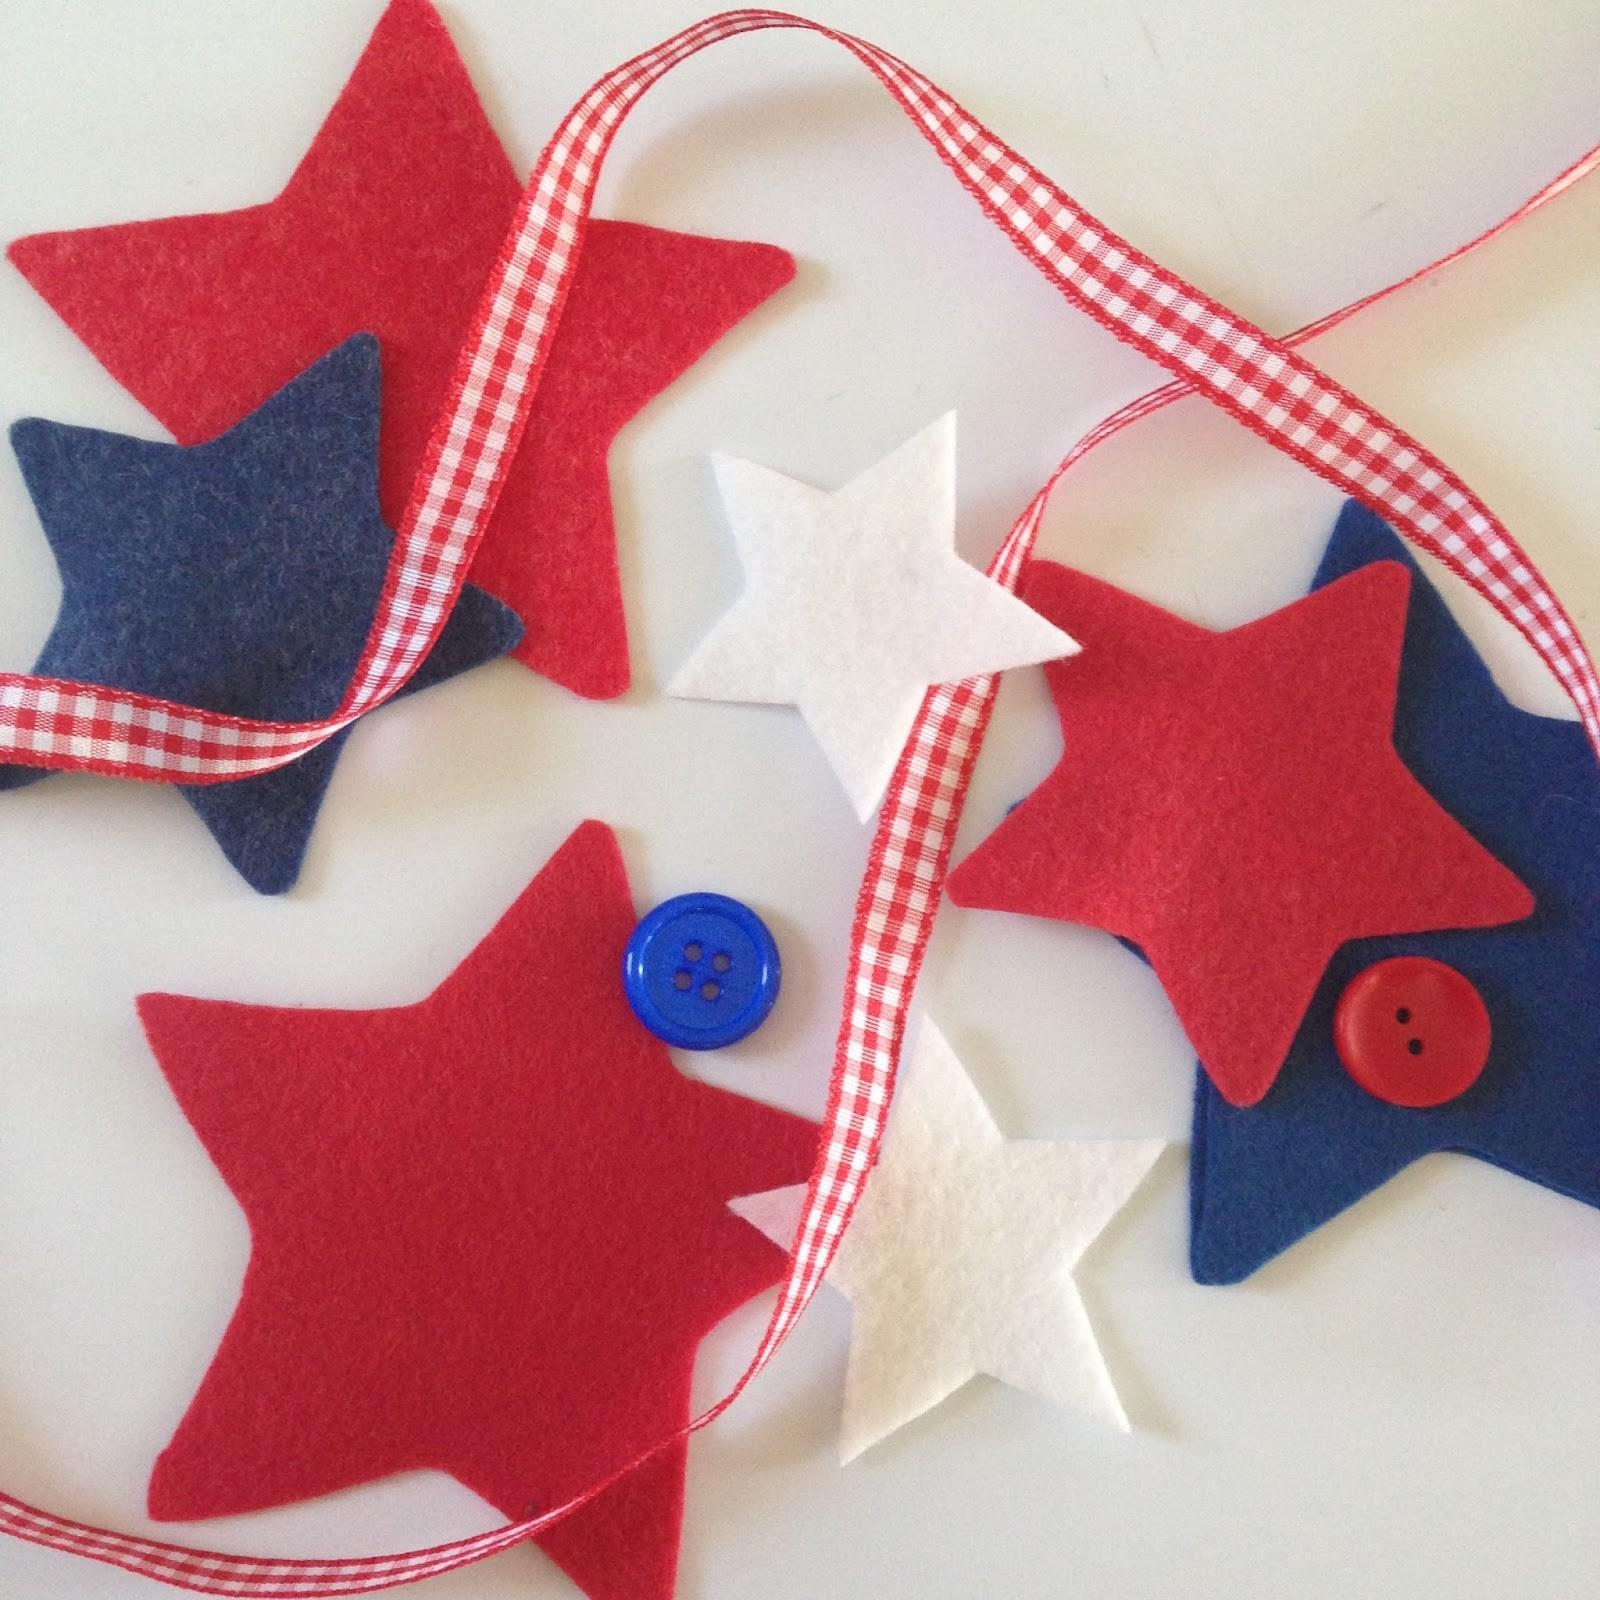 Kbb Crafts Stitches Fourth July Napkin Ties